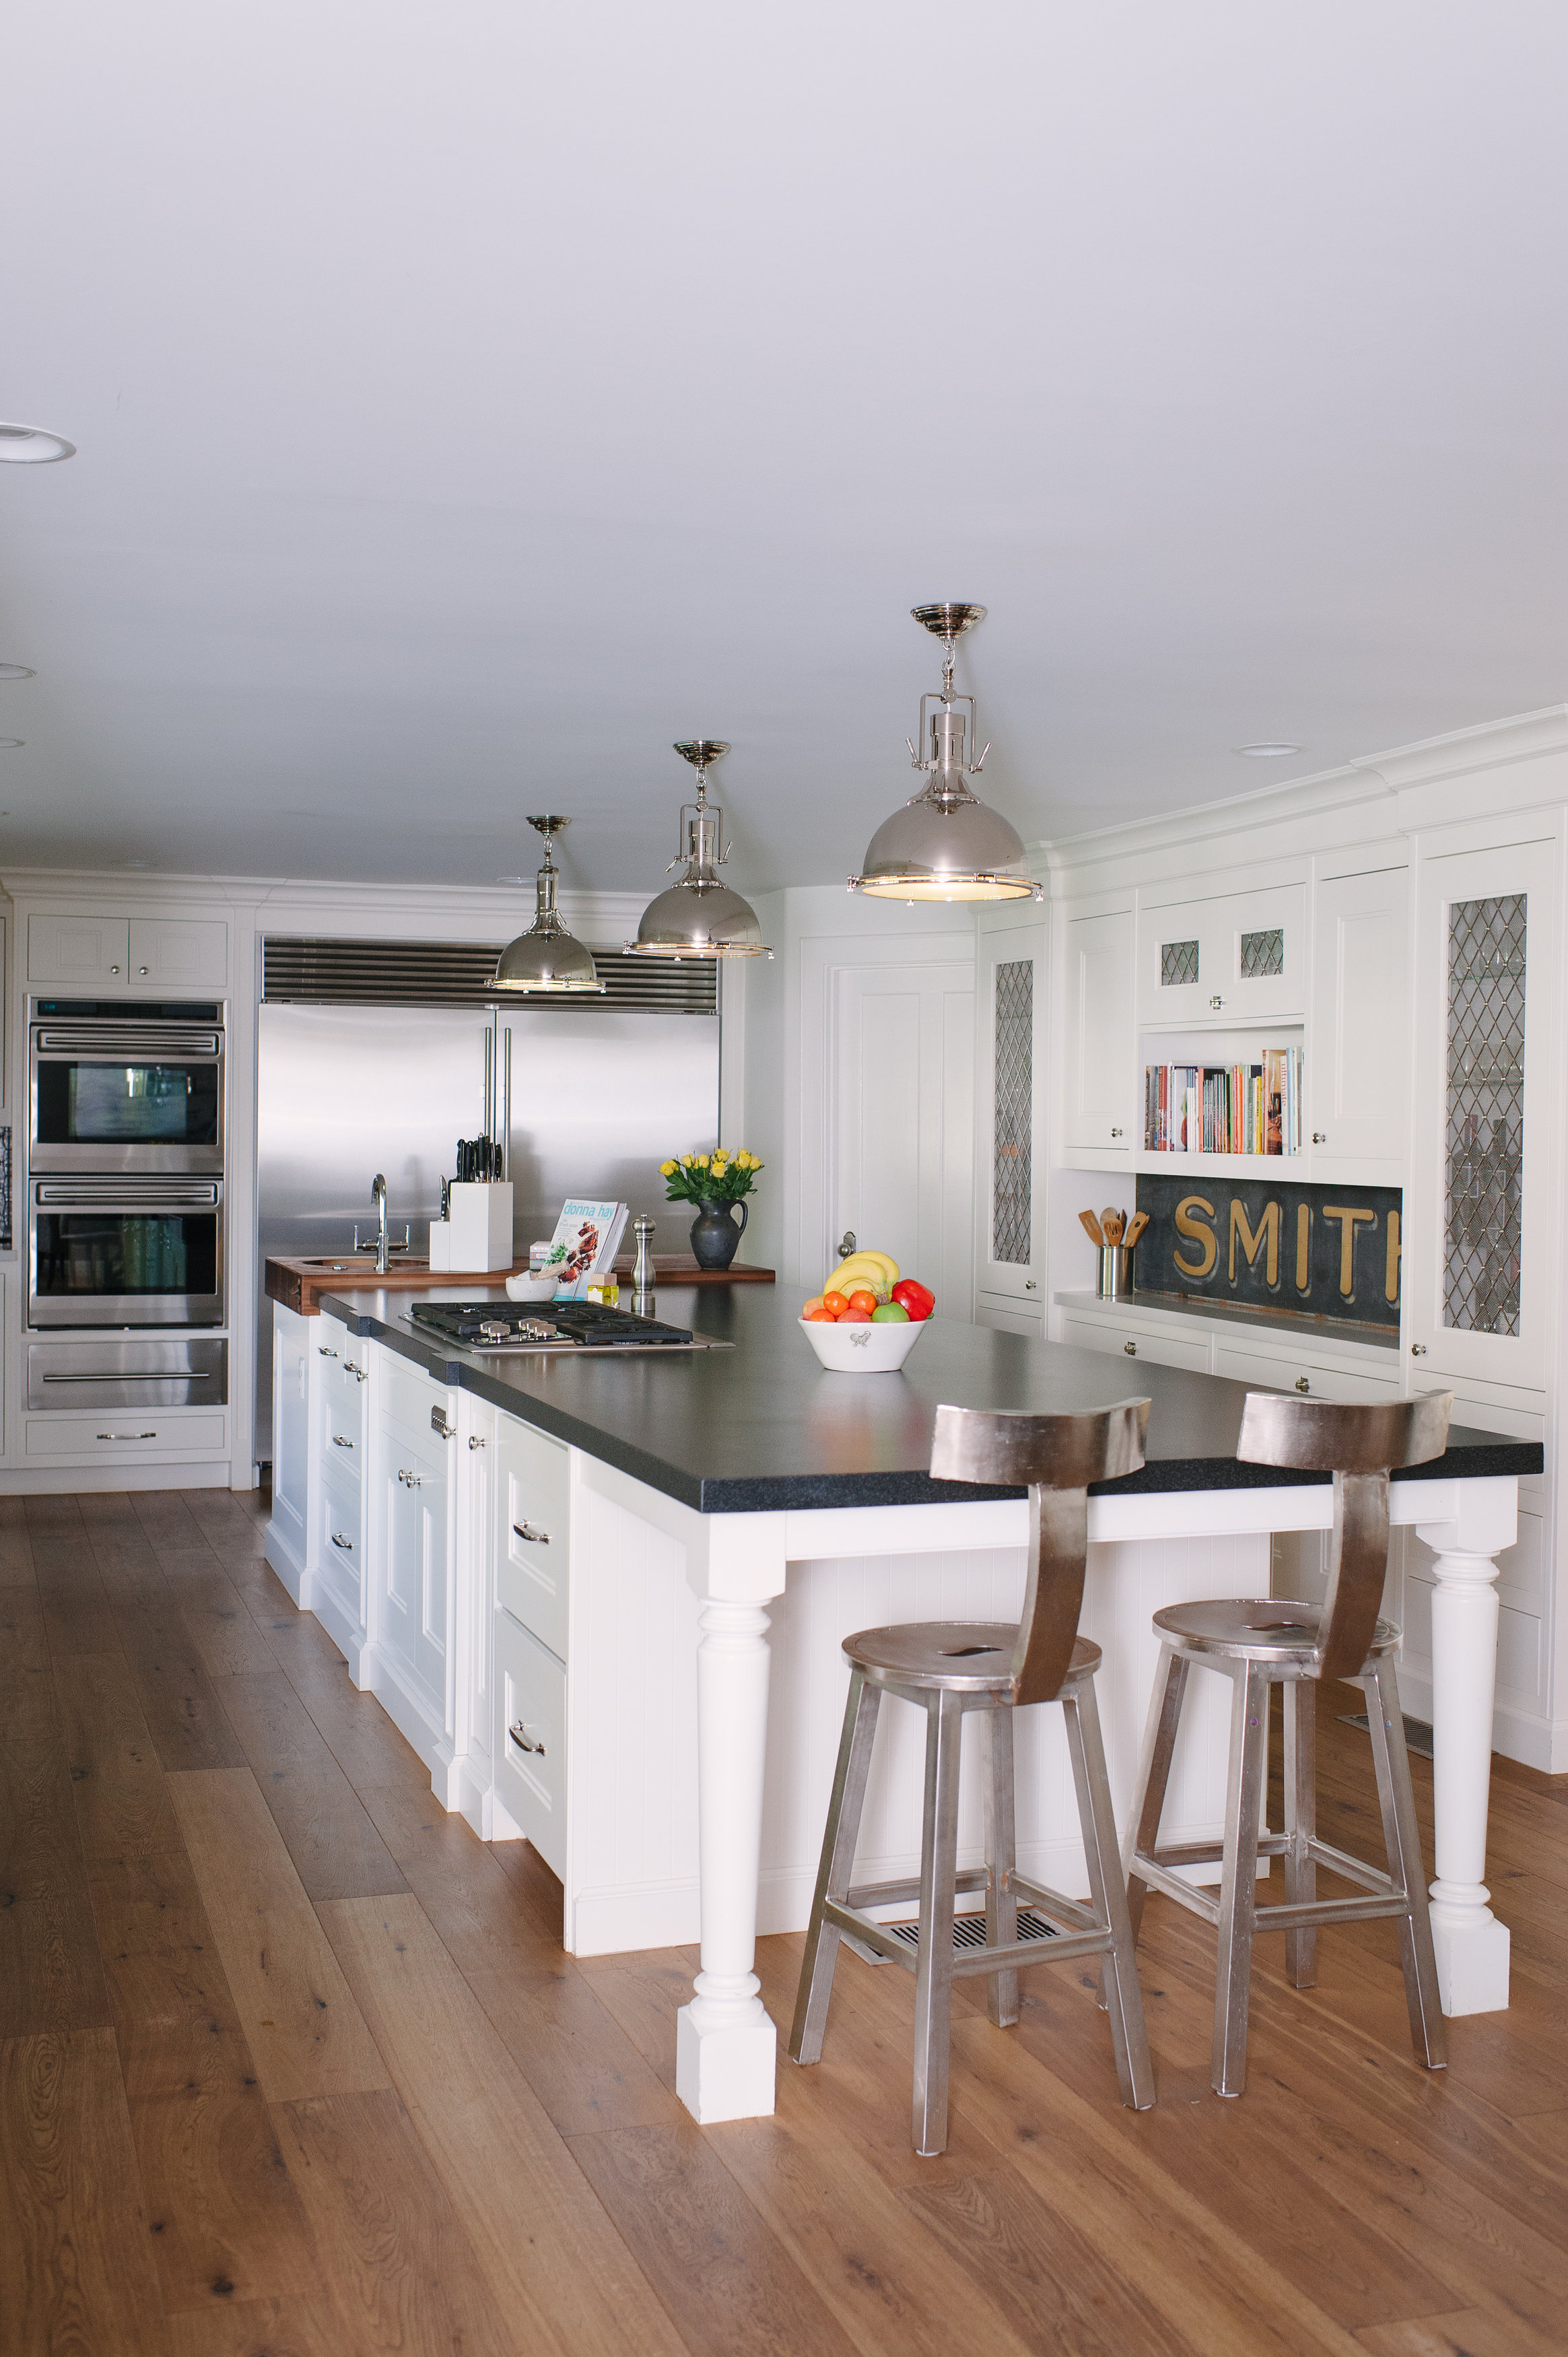 Like so many homeowners, the Smiths consider the kitchen their home base. This expansive kitchen keeps it classic with walnut floors, a double refrigerator, Silestone countertops, and custom cabinetry painted white.